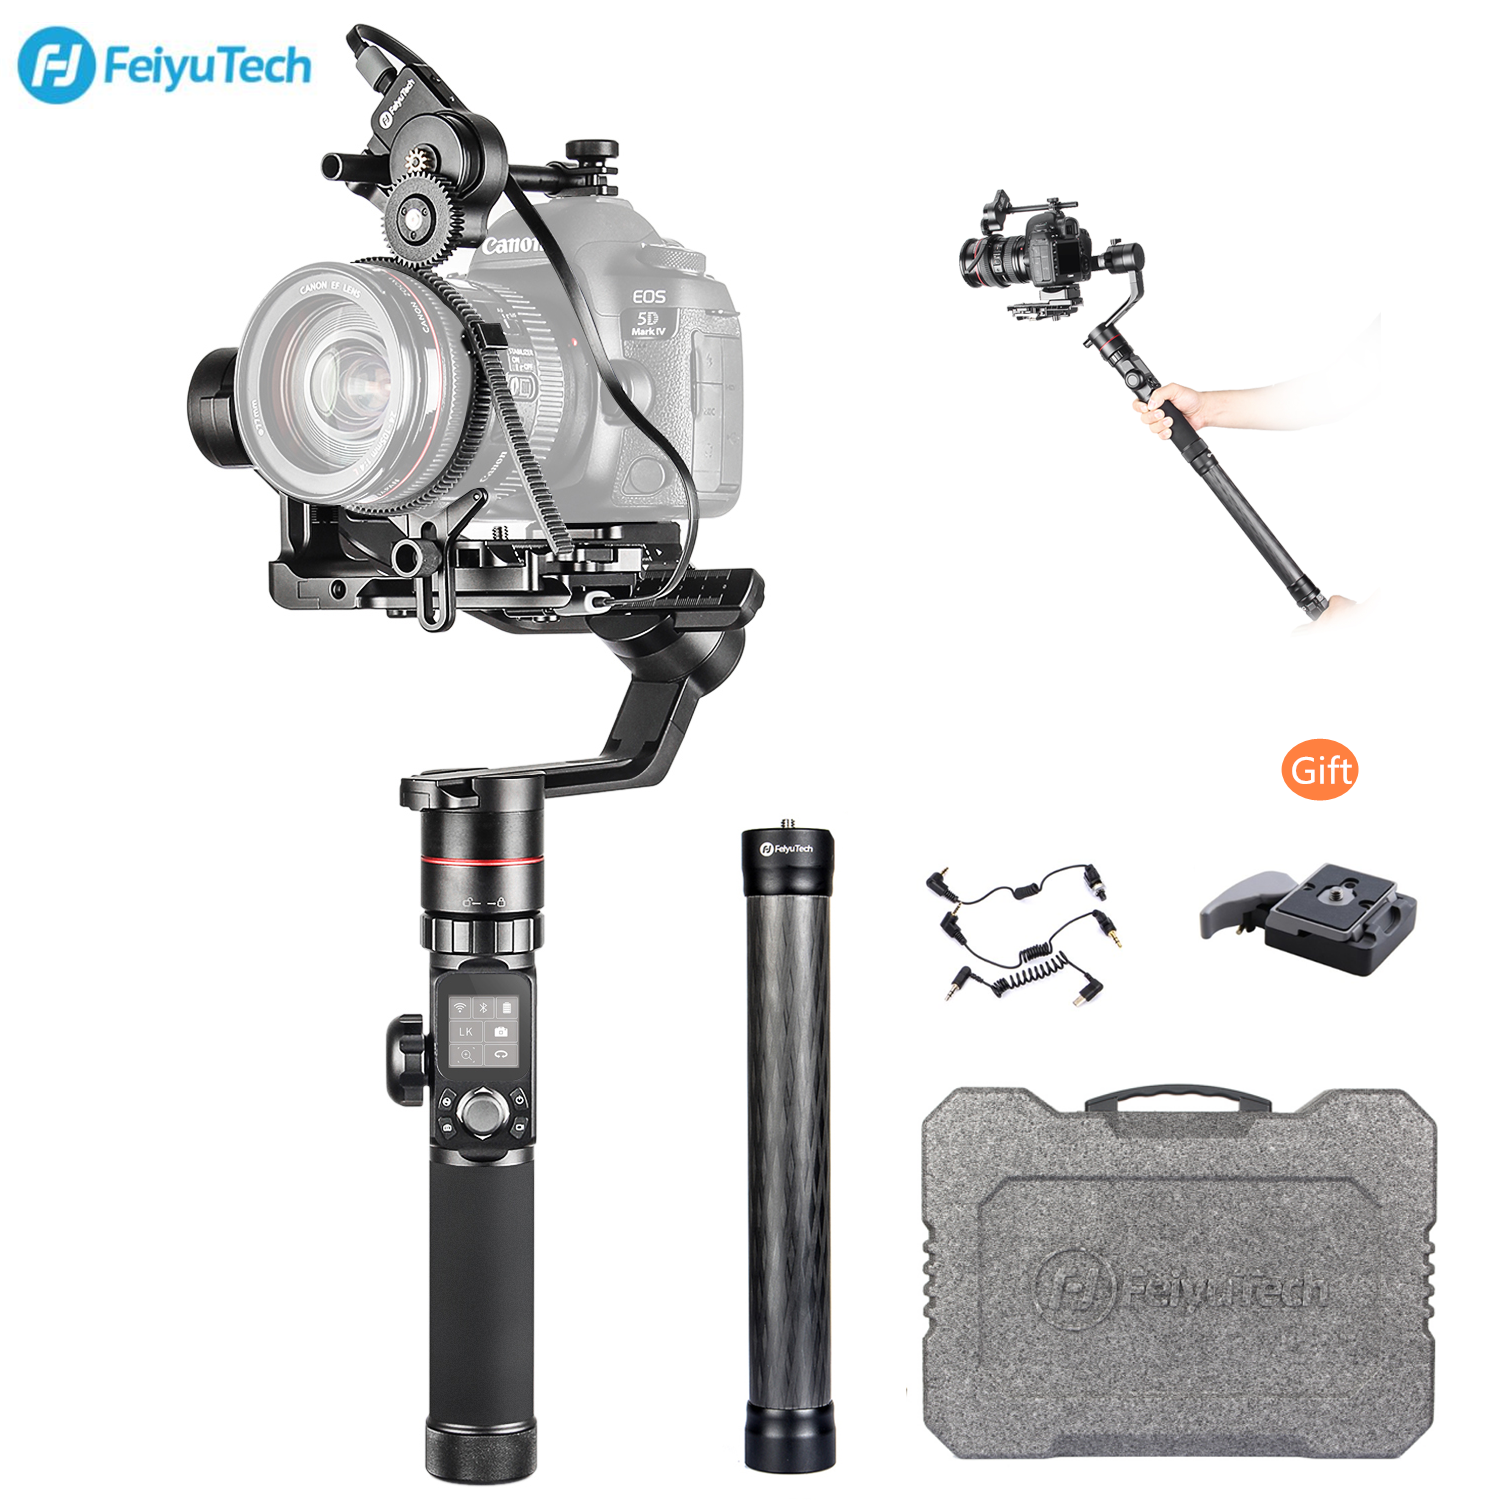 FeiyuTech Feiyu AK4000 3 Axis Handheld Gimbal Stabilizer for Canon Sony Panasonic Mirrorless DSLR Camera Cinema CamcorderFeiyuTech Feiyu AK4000 3 Axis Handheld Gimbal Stabilizer for Canon Sony Panasonic Mirrorless DSLR Camera Cinema Camcorder